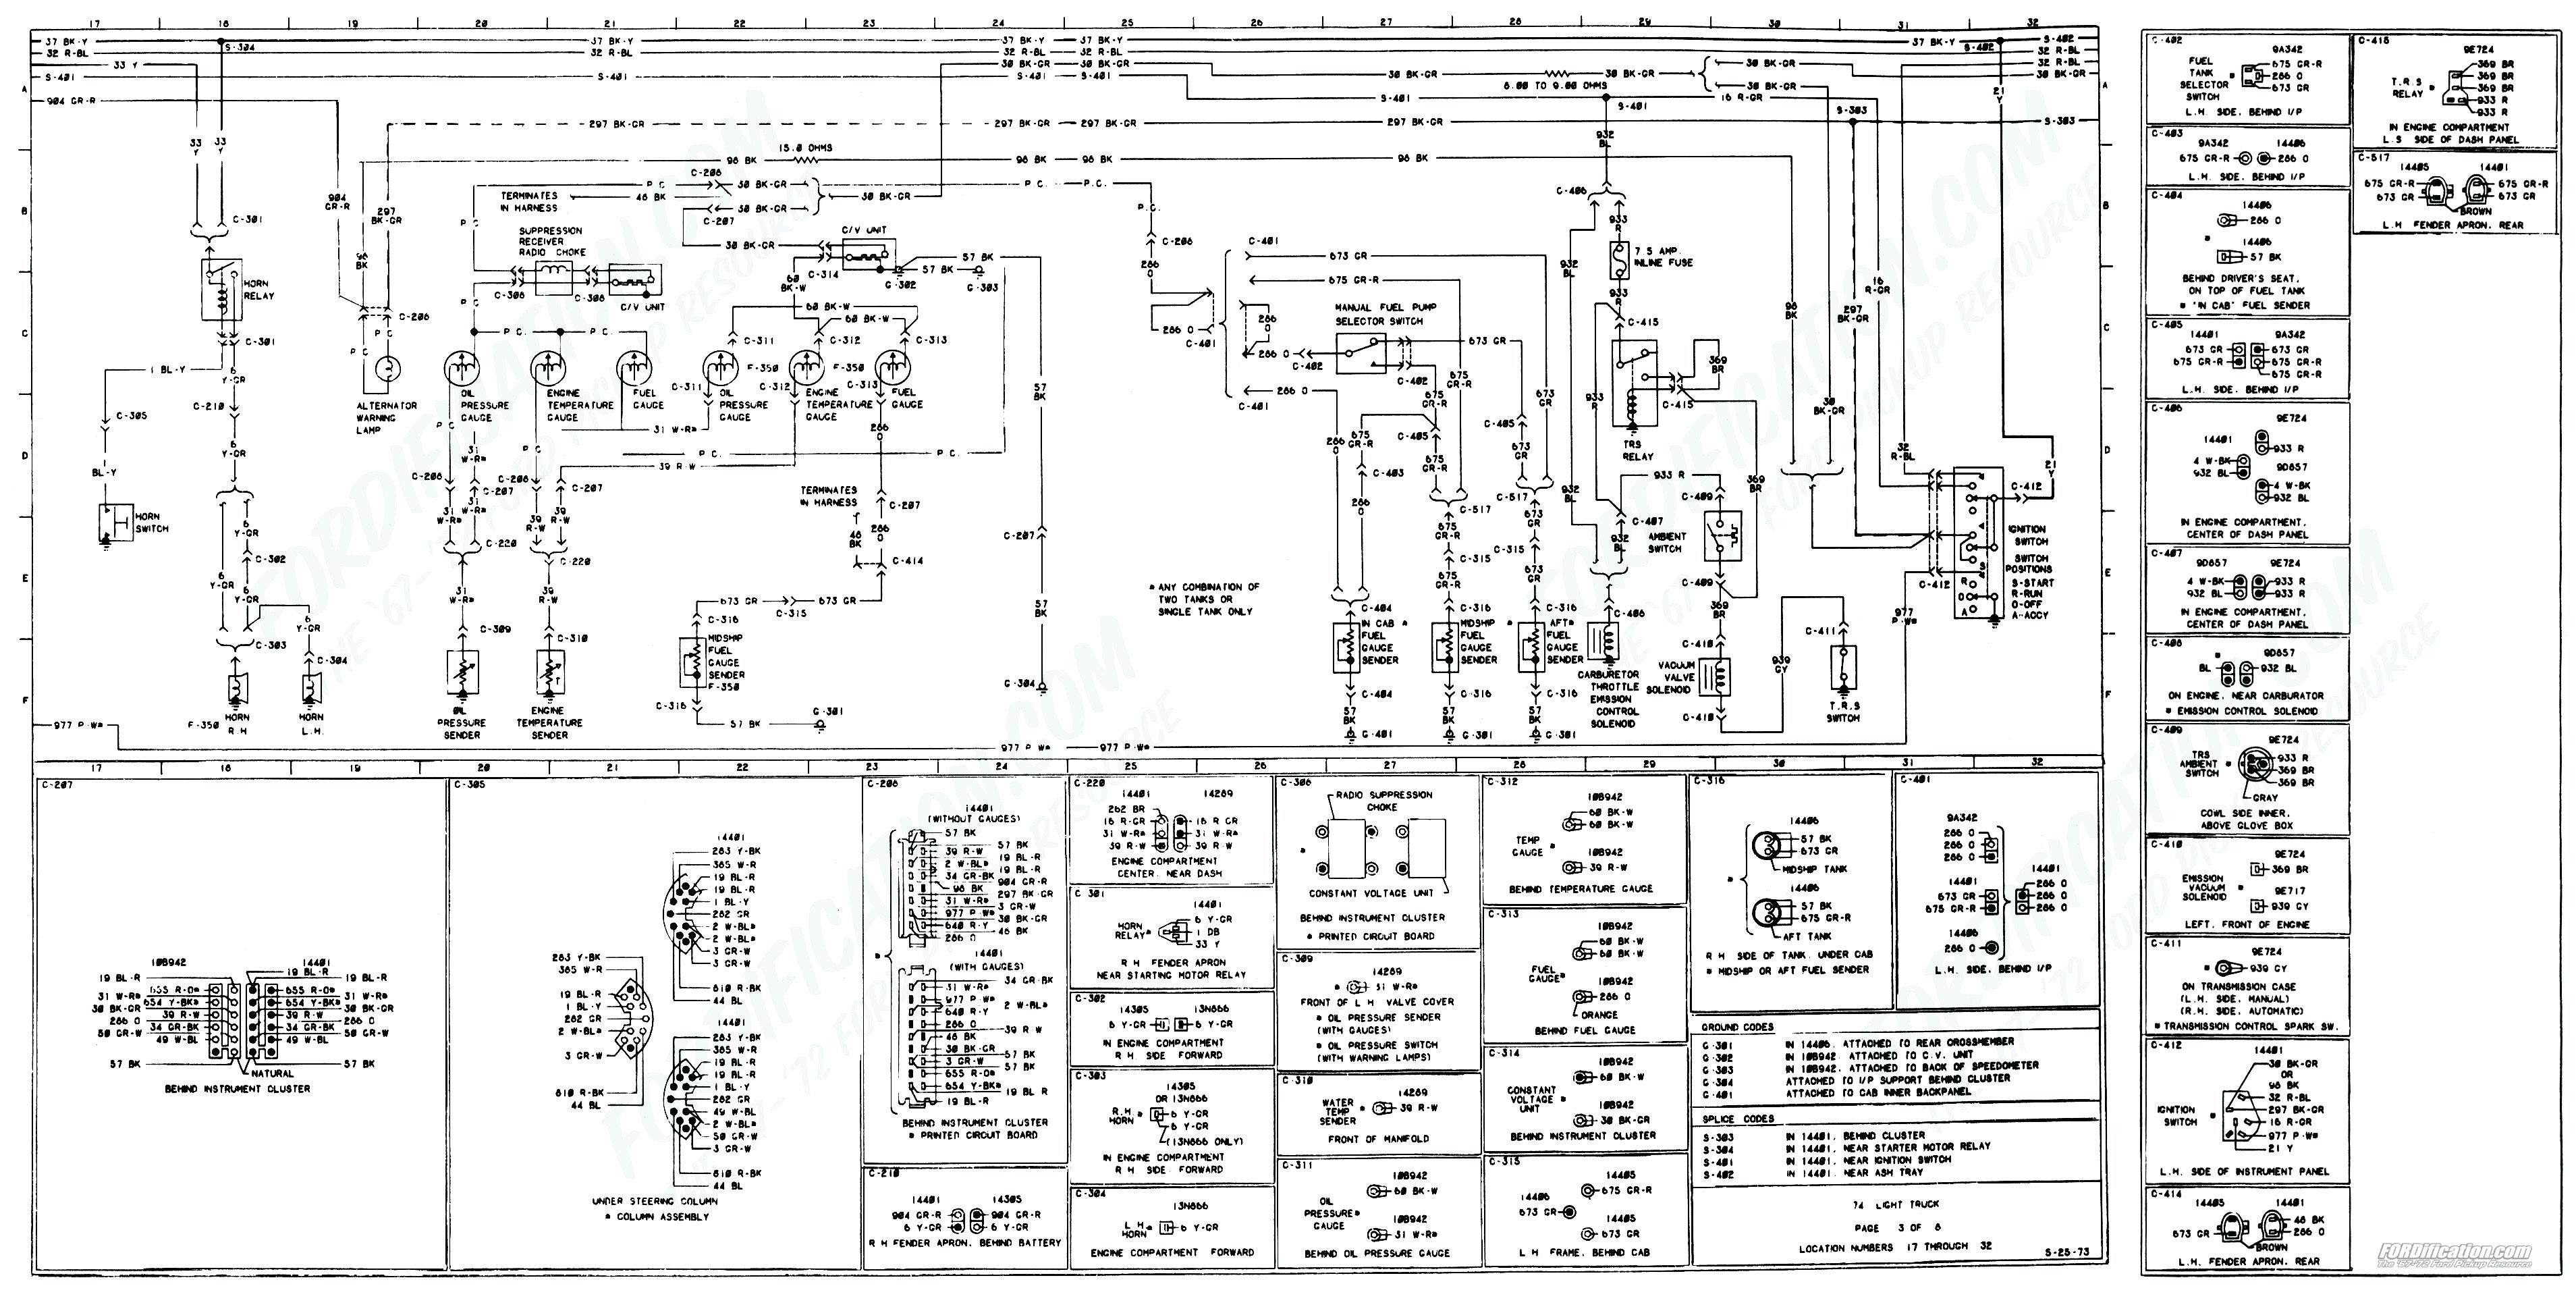 medium resolution of 1979 chevy truck wiring diagram beautiful 1979 chevy truck wiring diagram steering column delay wipers bytes